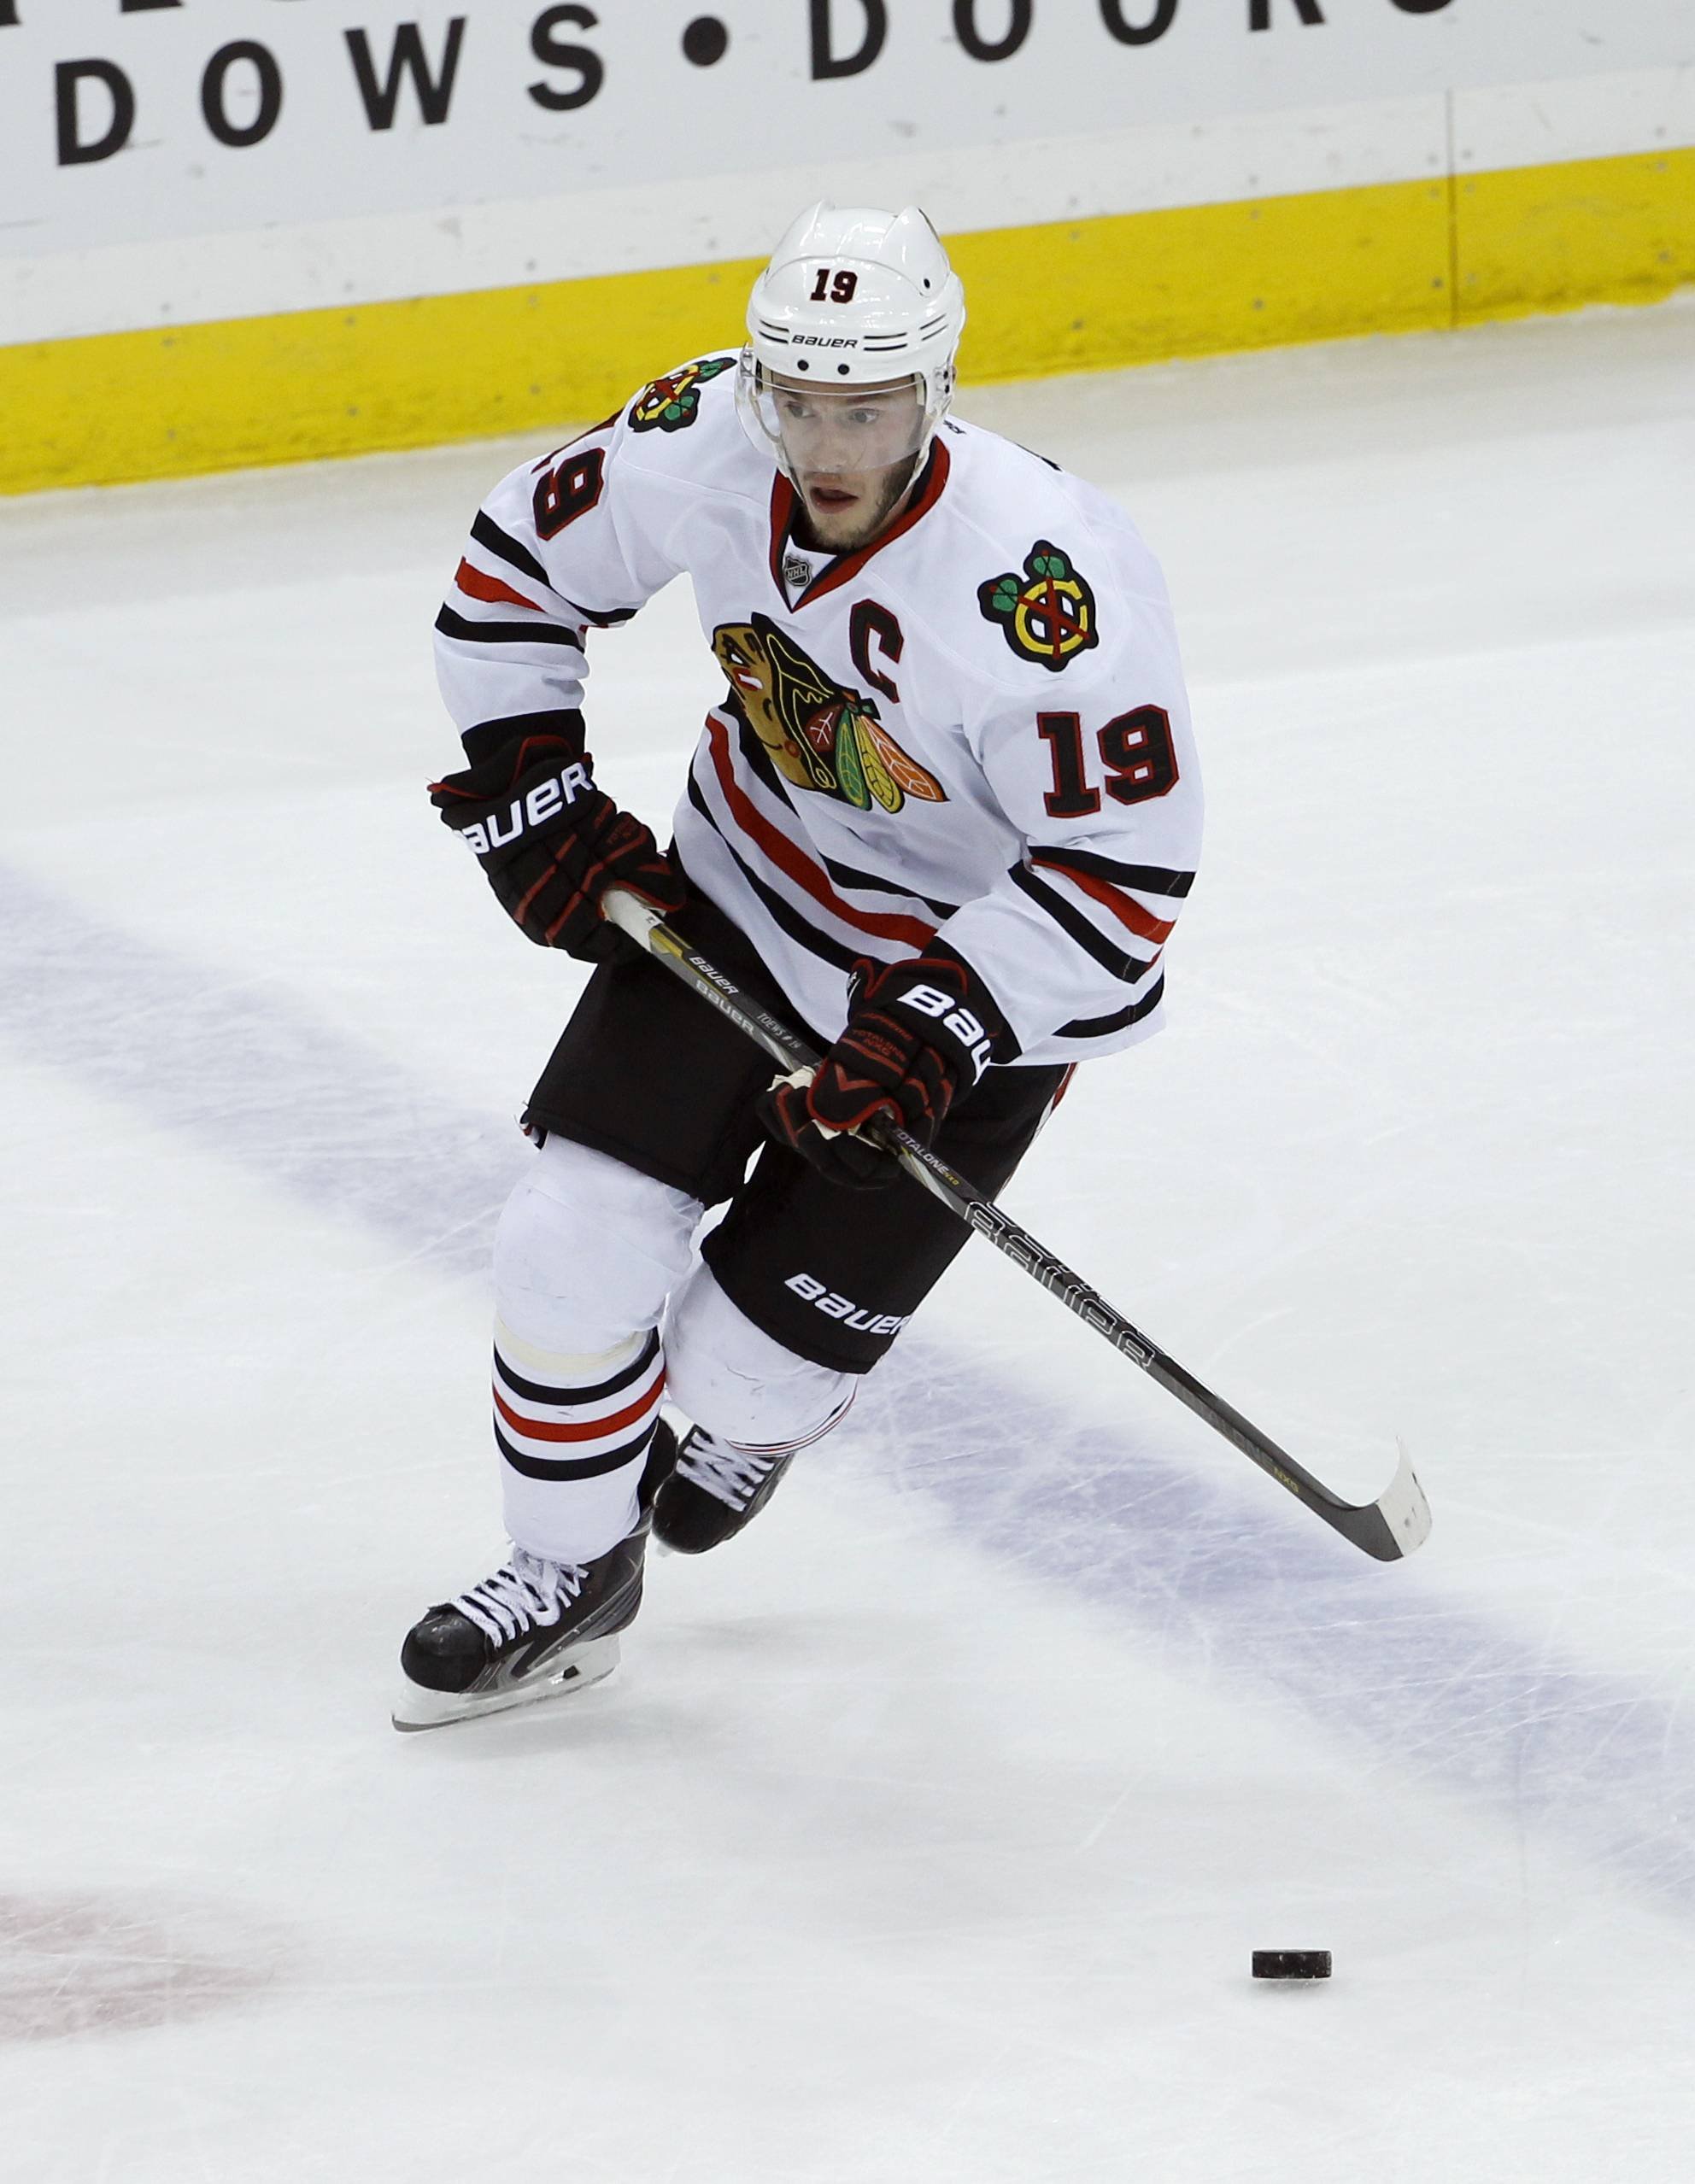 Chicago Blackhawks center Jonathan Toews (19) controls the puck during the first period of Game 6 of an NHL hockey second-round playoff series against the Minnesota Wild in St. Paul, Minn., Tuesday, May 13, 2014. (AP Photo/Ann Heisenfelt)